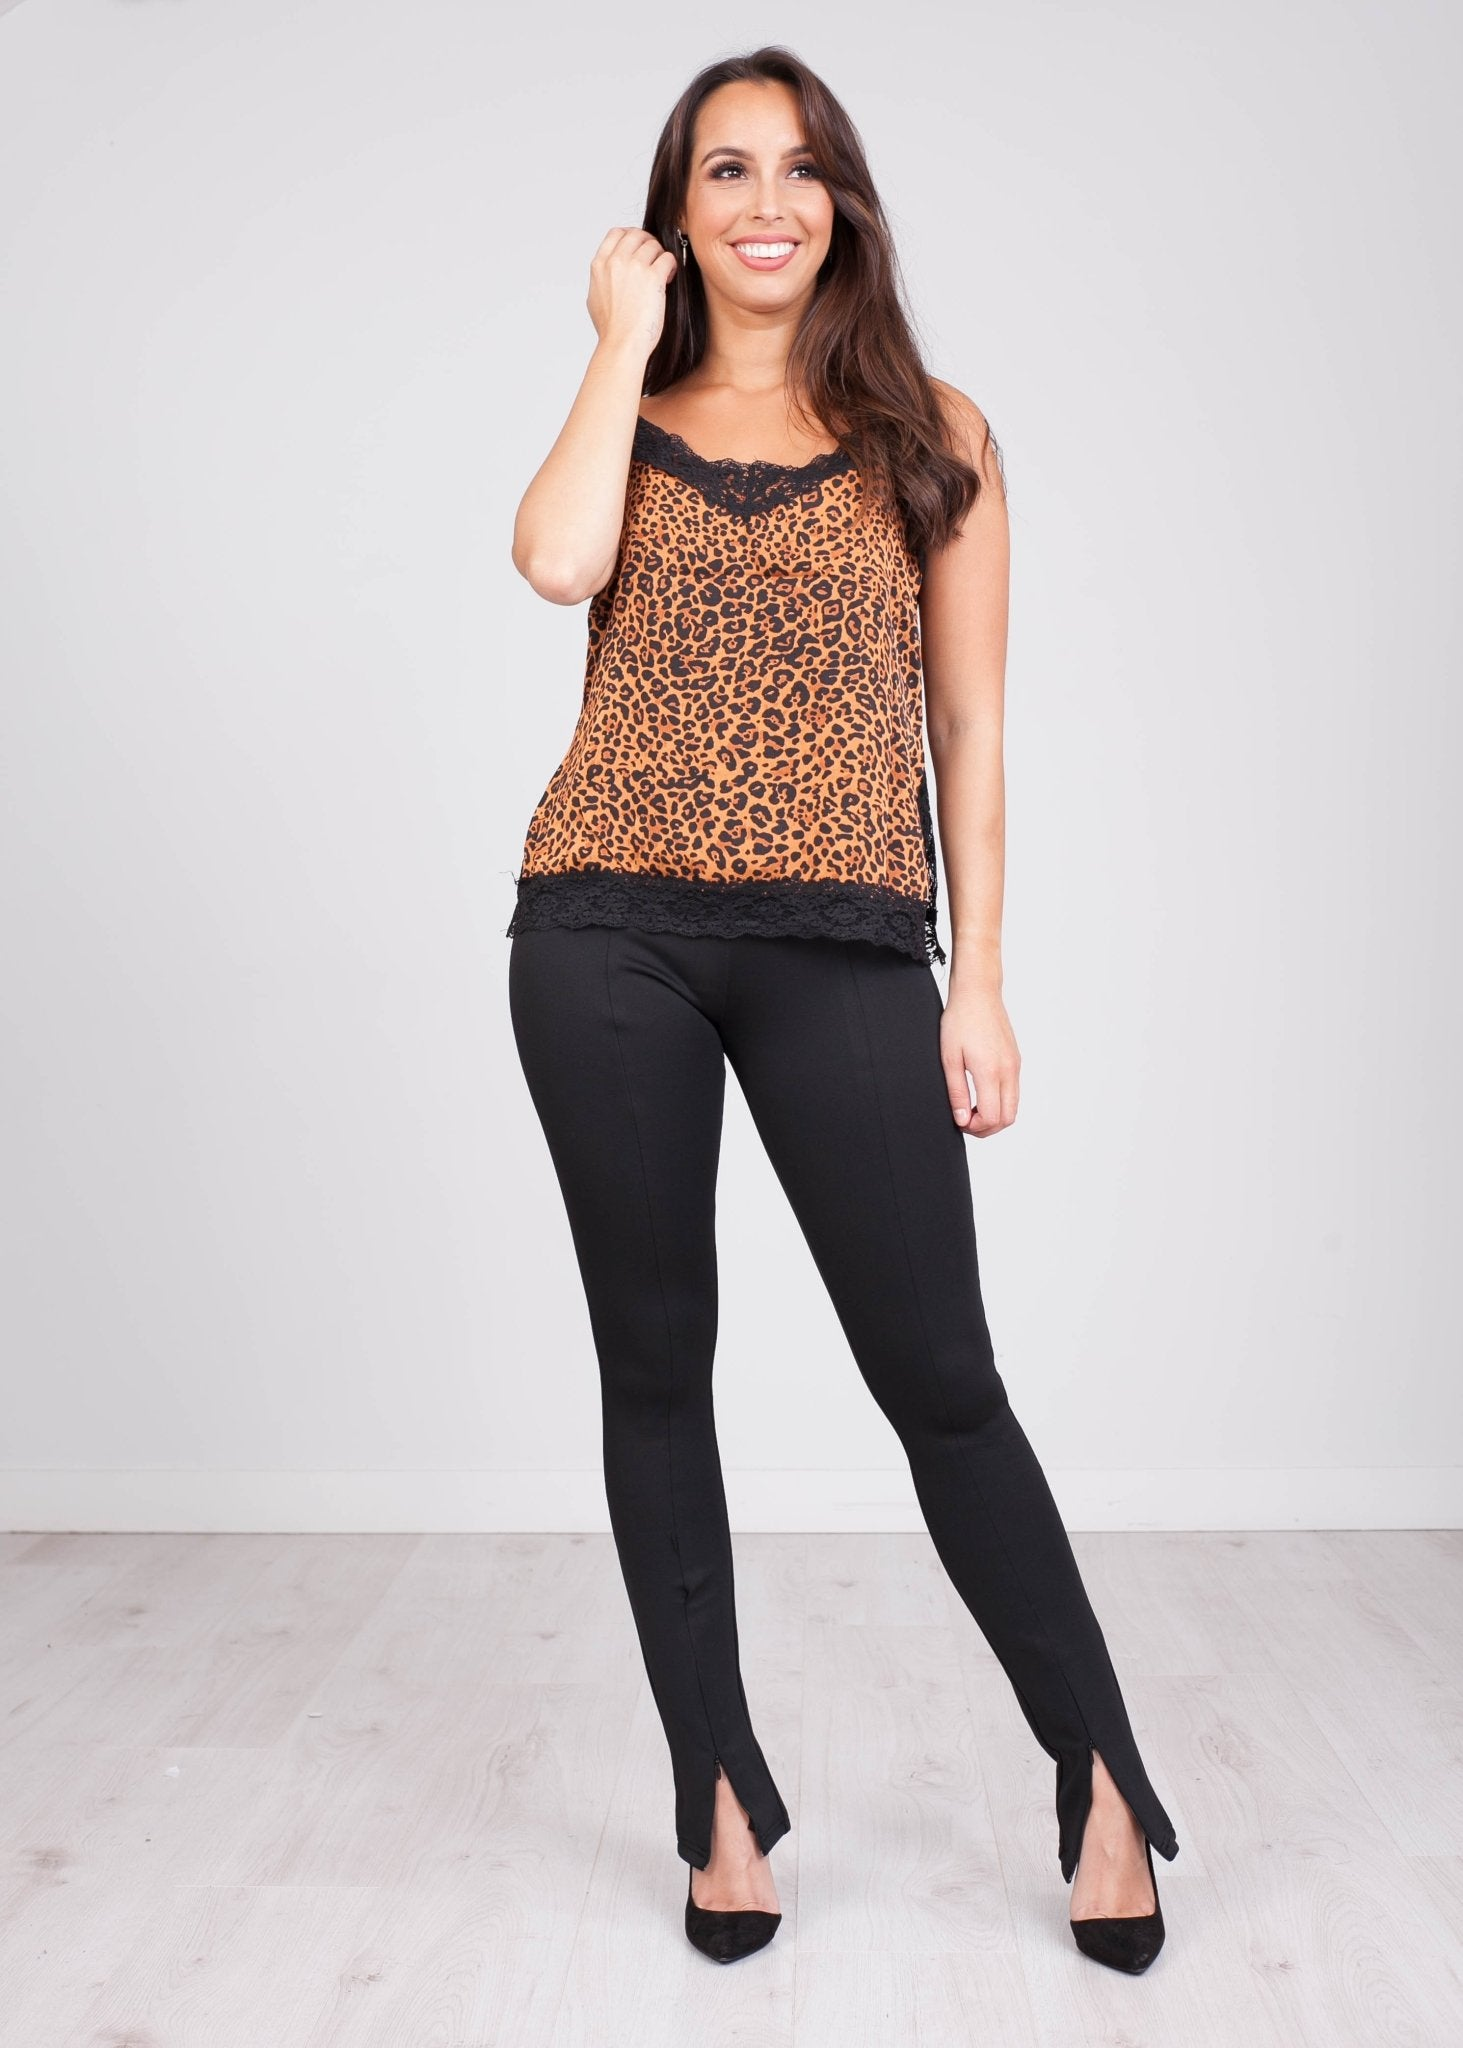 Charlee Black Zip Trousers - The Walk in Wardrobe